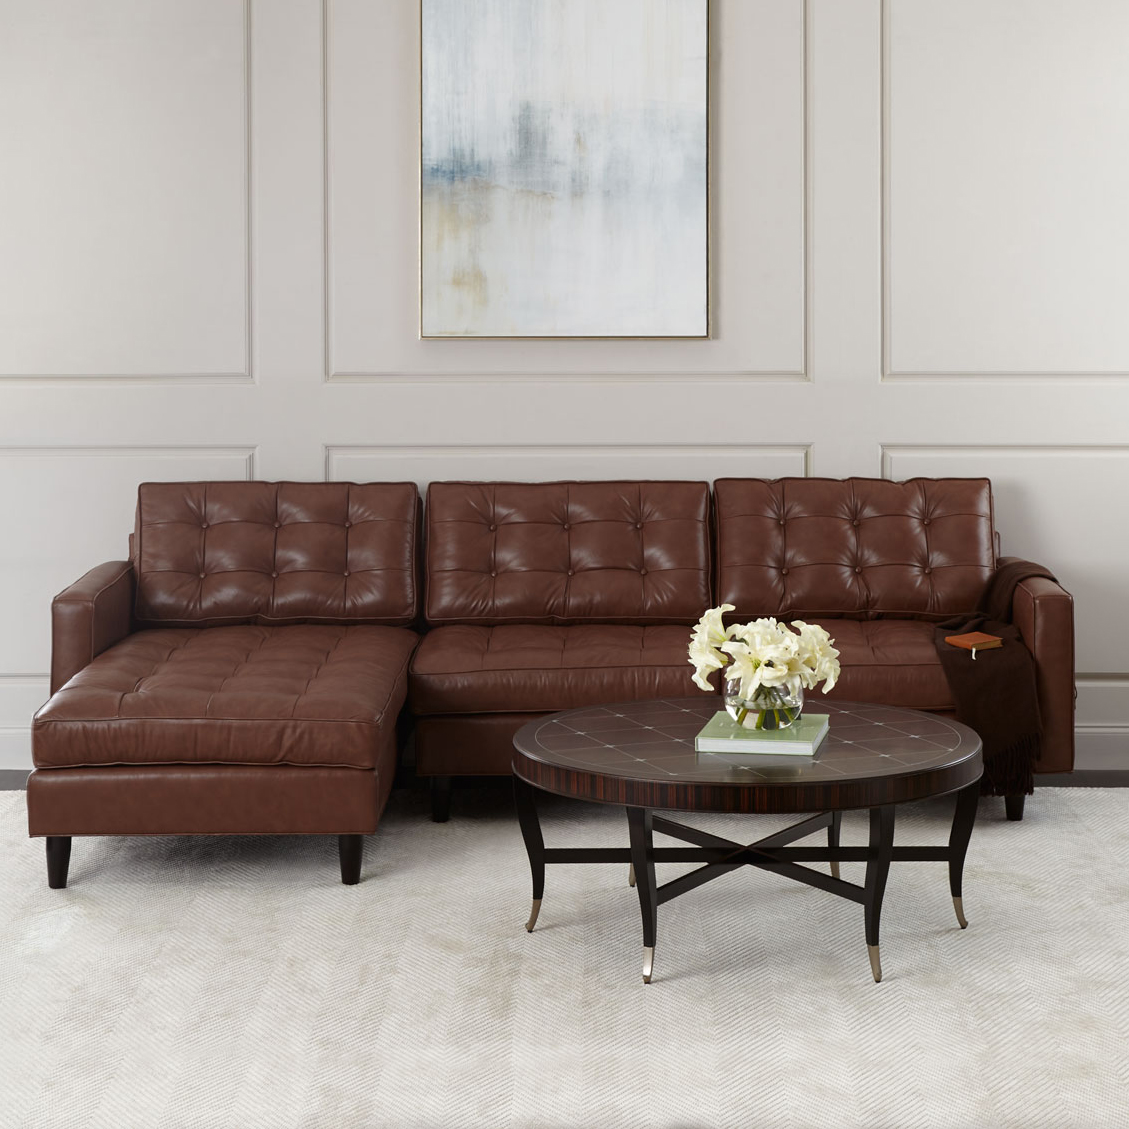 SFL00036 Modern sofa wood carving living room furniture